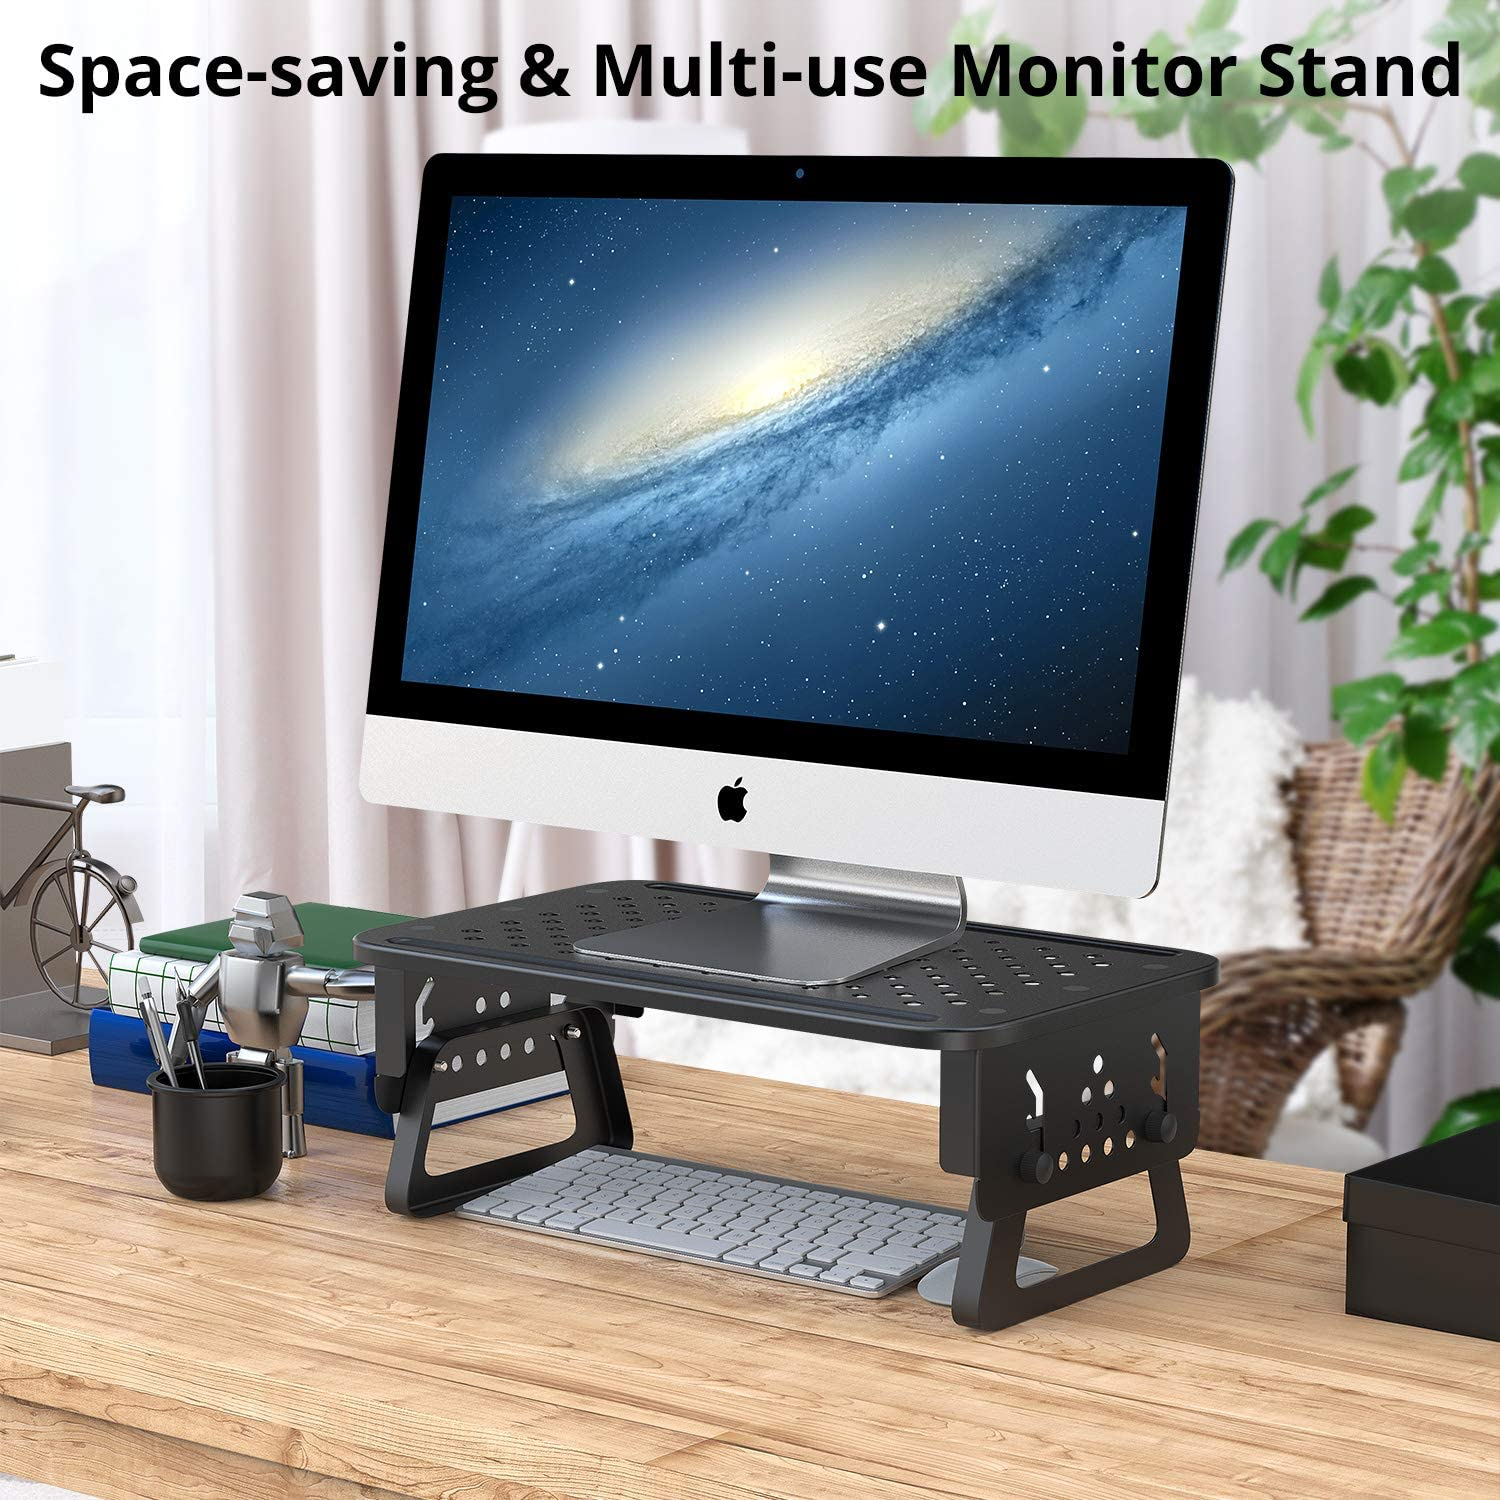 ATUMTEK Monitor Stand Riser [Aircraft Grade Aluminium] 3 Height Adjustable Metal Monitor Desk Stand with Mesh Platform for Computer Screen Laptop iMac PC Printer Small Projector and More - Black